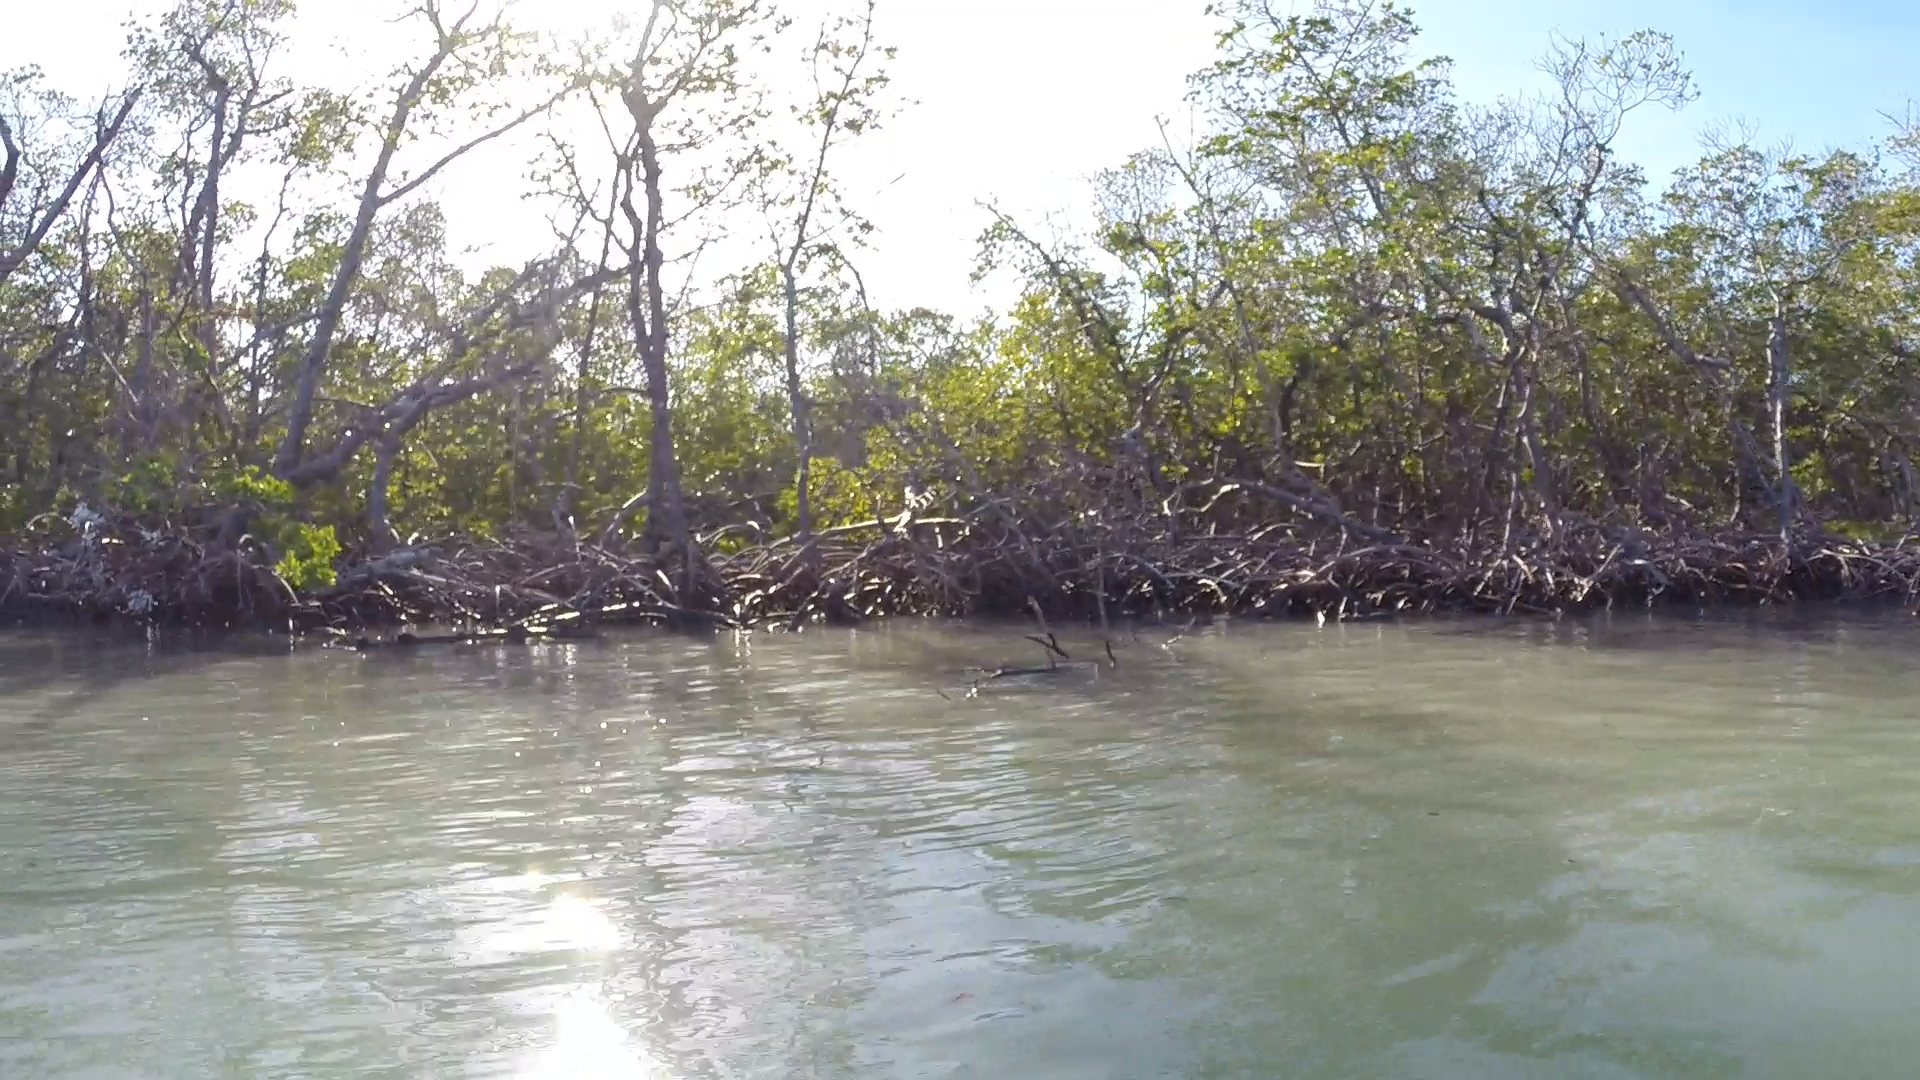 The mangroves that lined Sea Oat were filled with birds, if you could spot them.